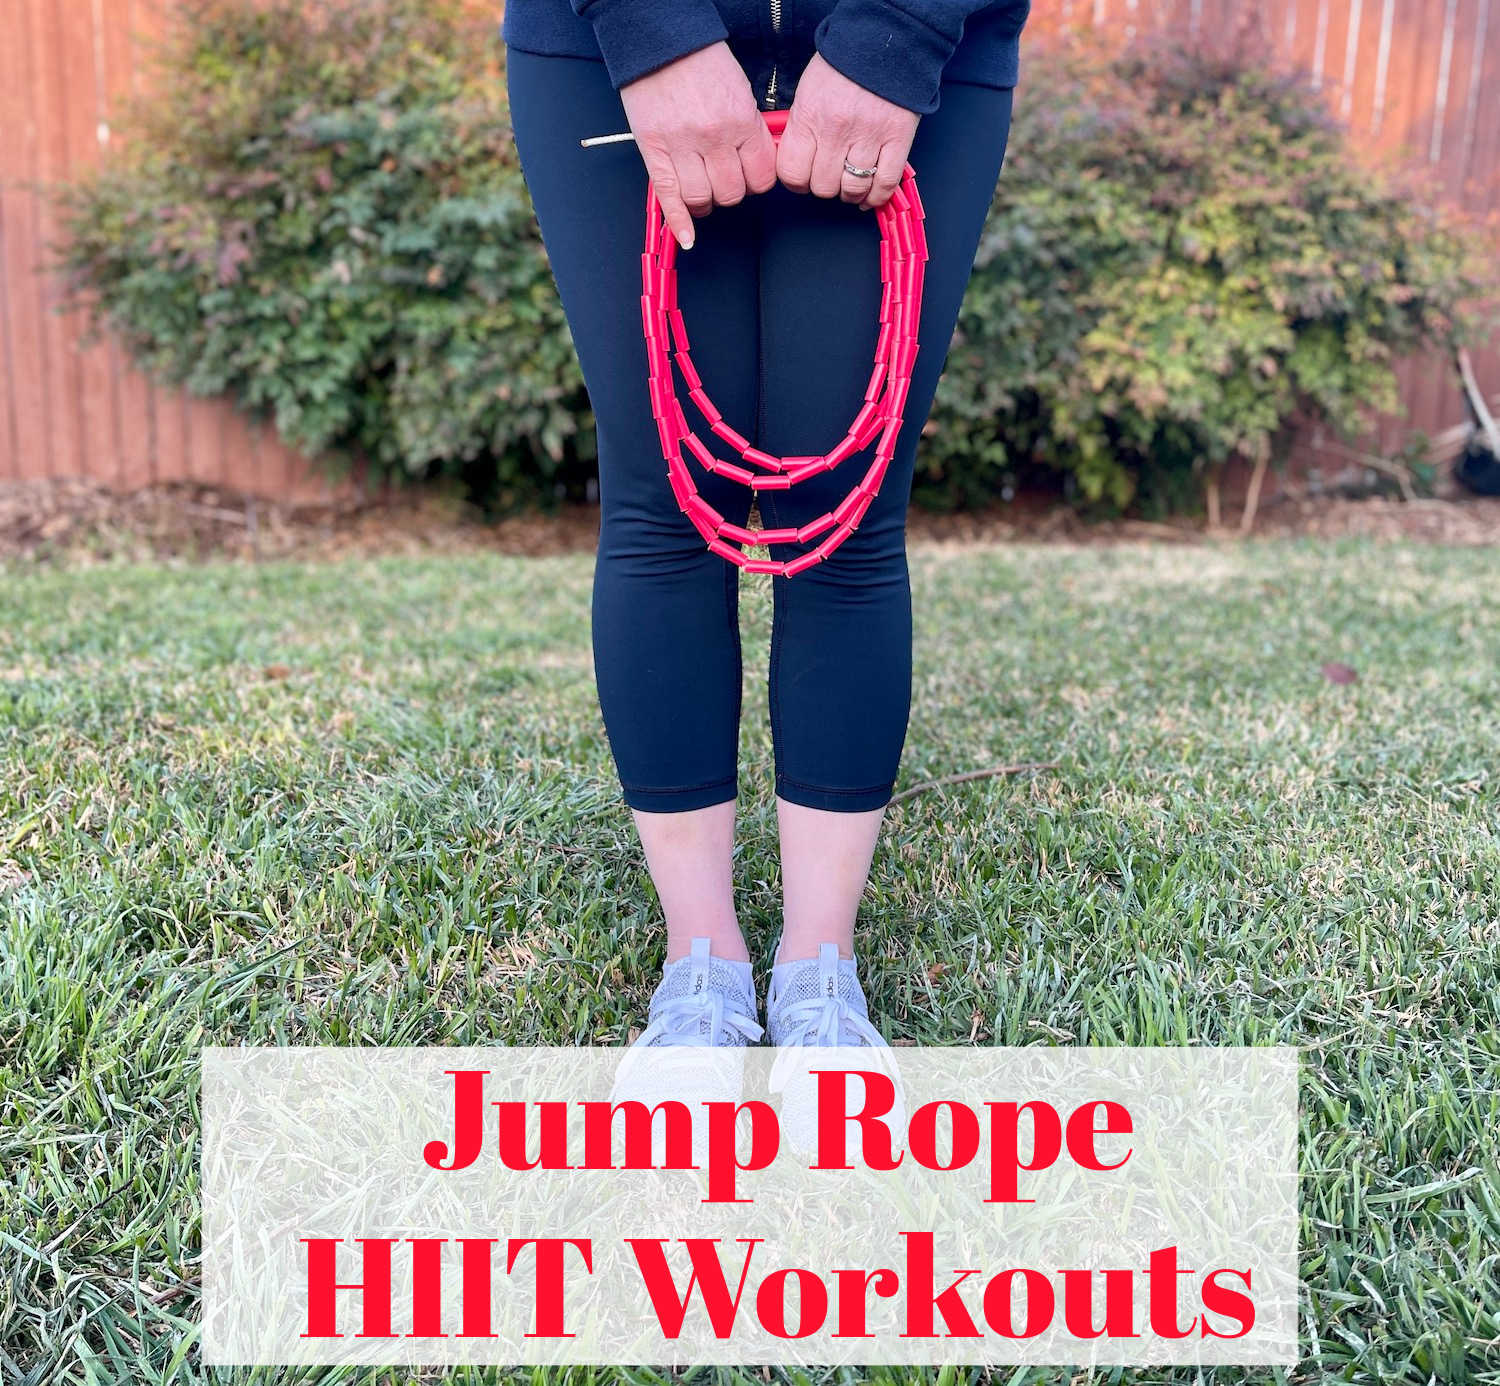 jump roper hiit workouts